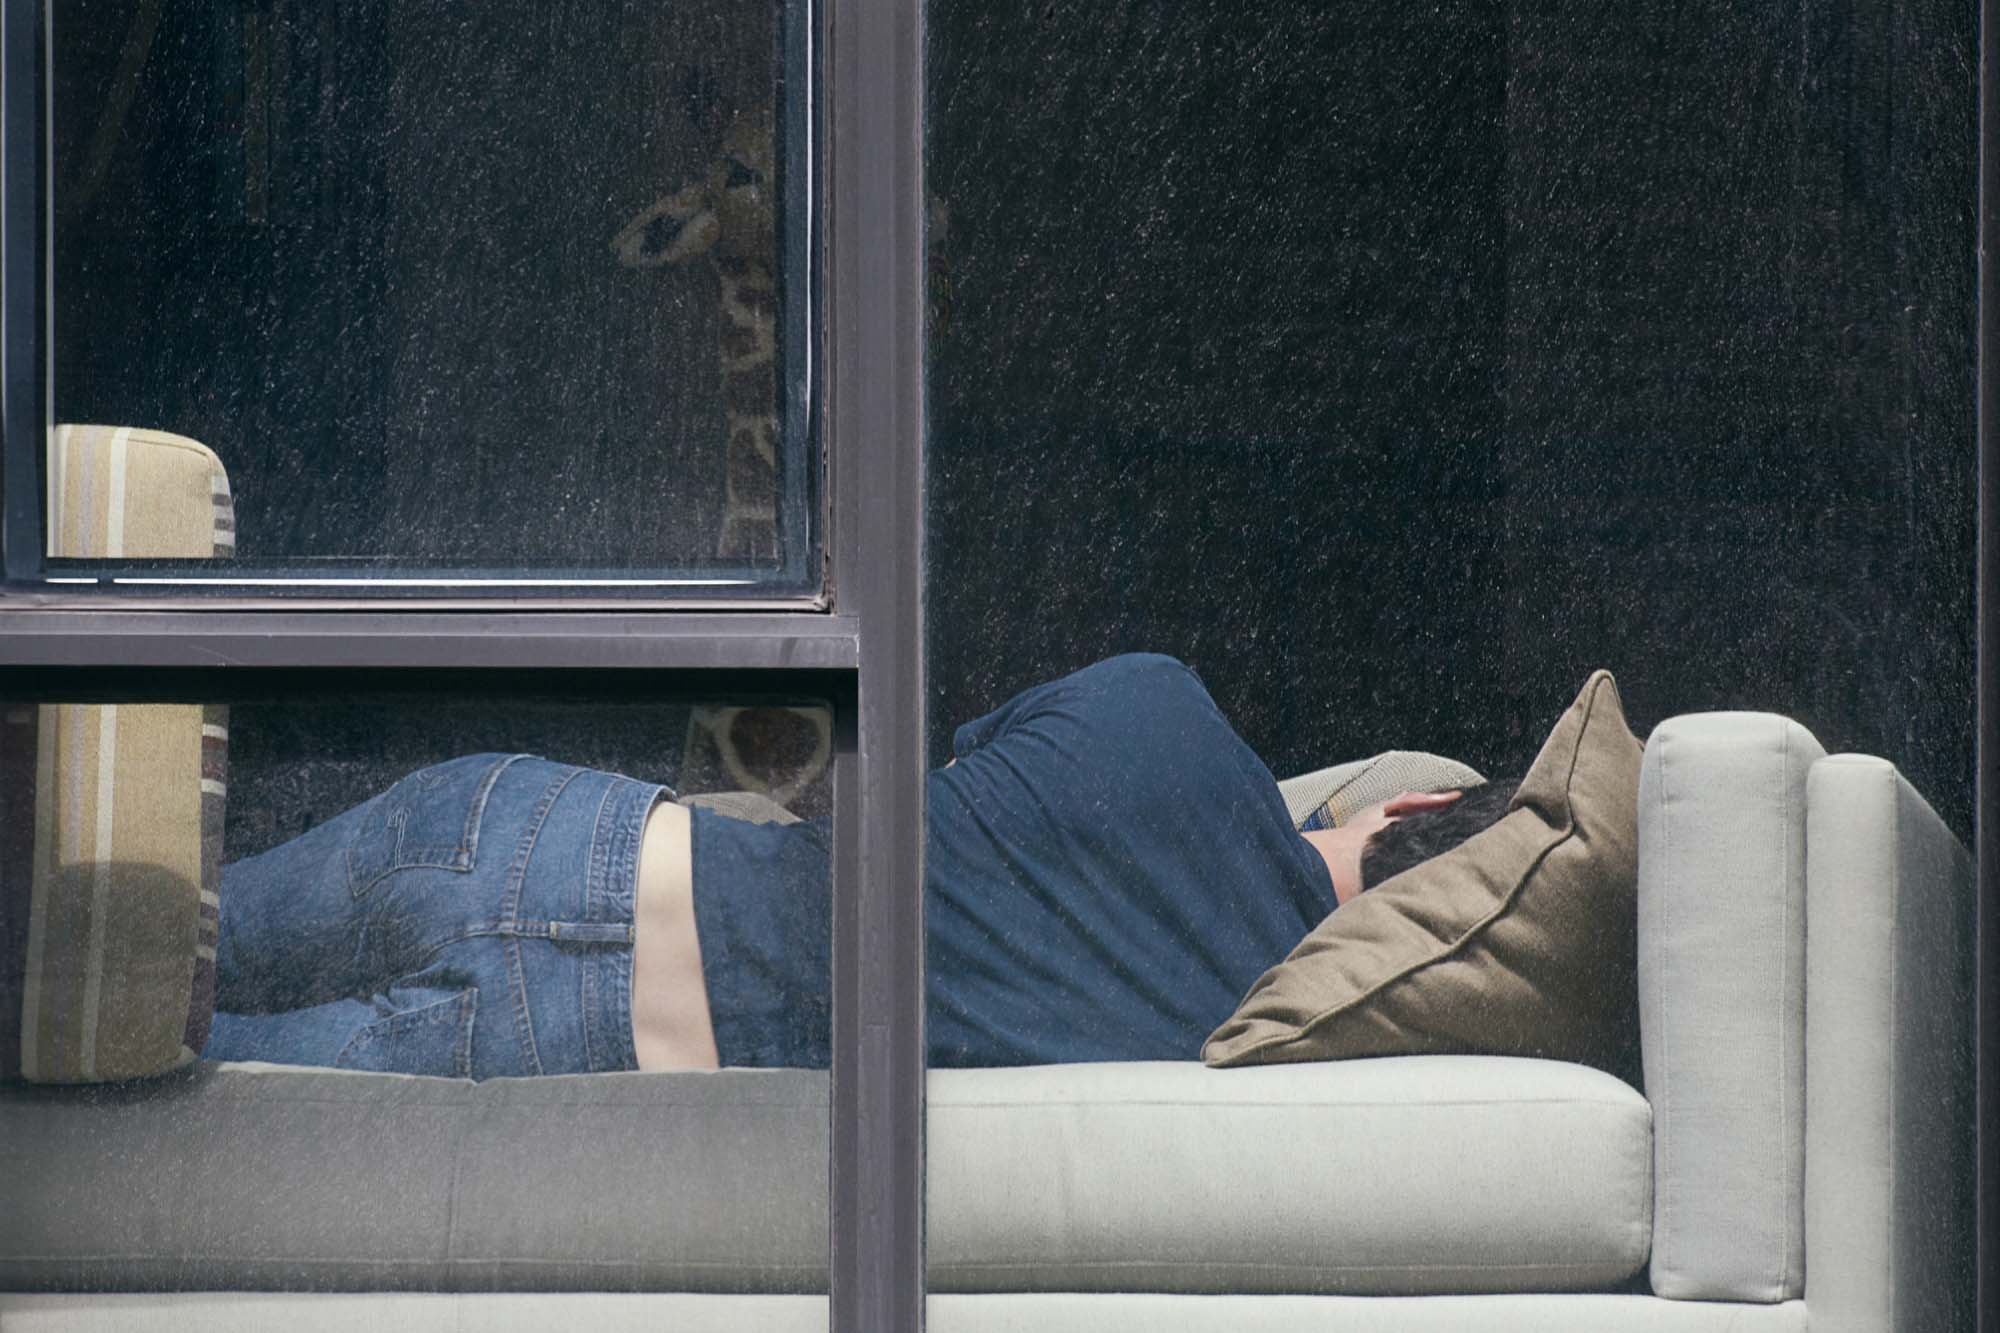 Arne Svenson, The Neighbors #11, 2012, pigment print, 45 x 30 inches